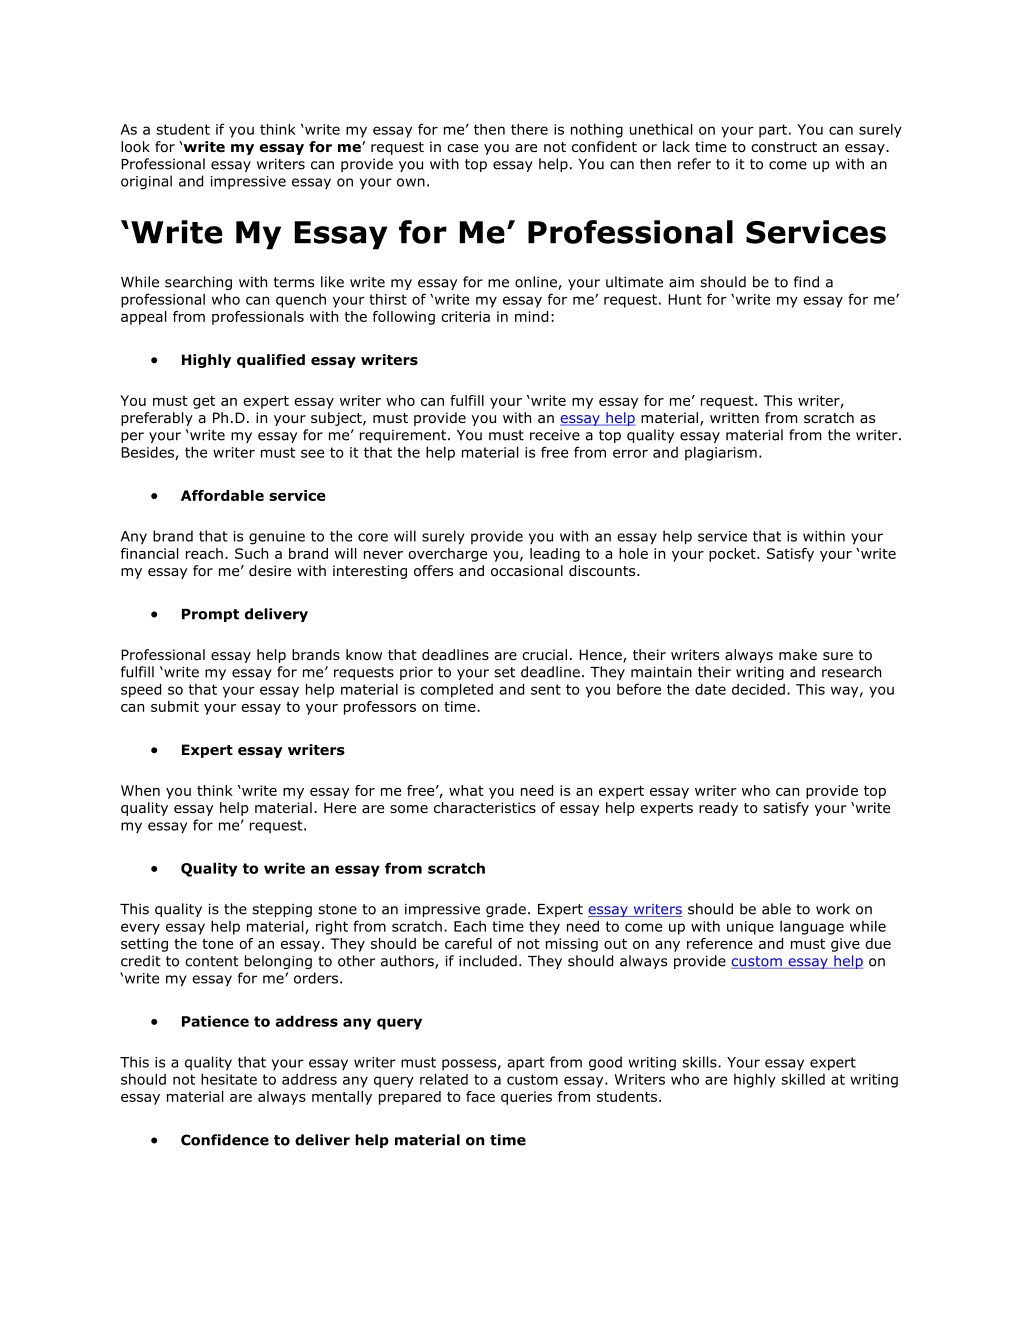 017 Write My Essay For Me Example As Student If You Think Surprising Free Canada Online Full